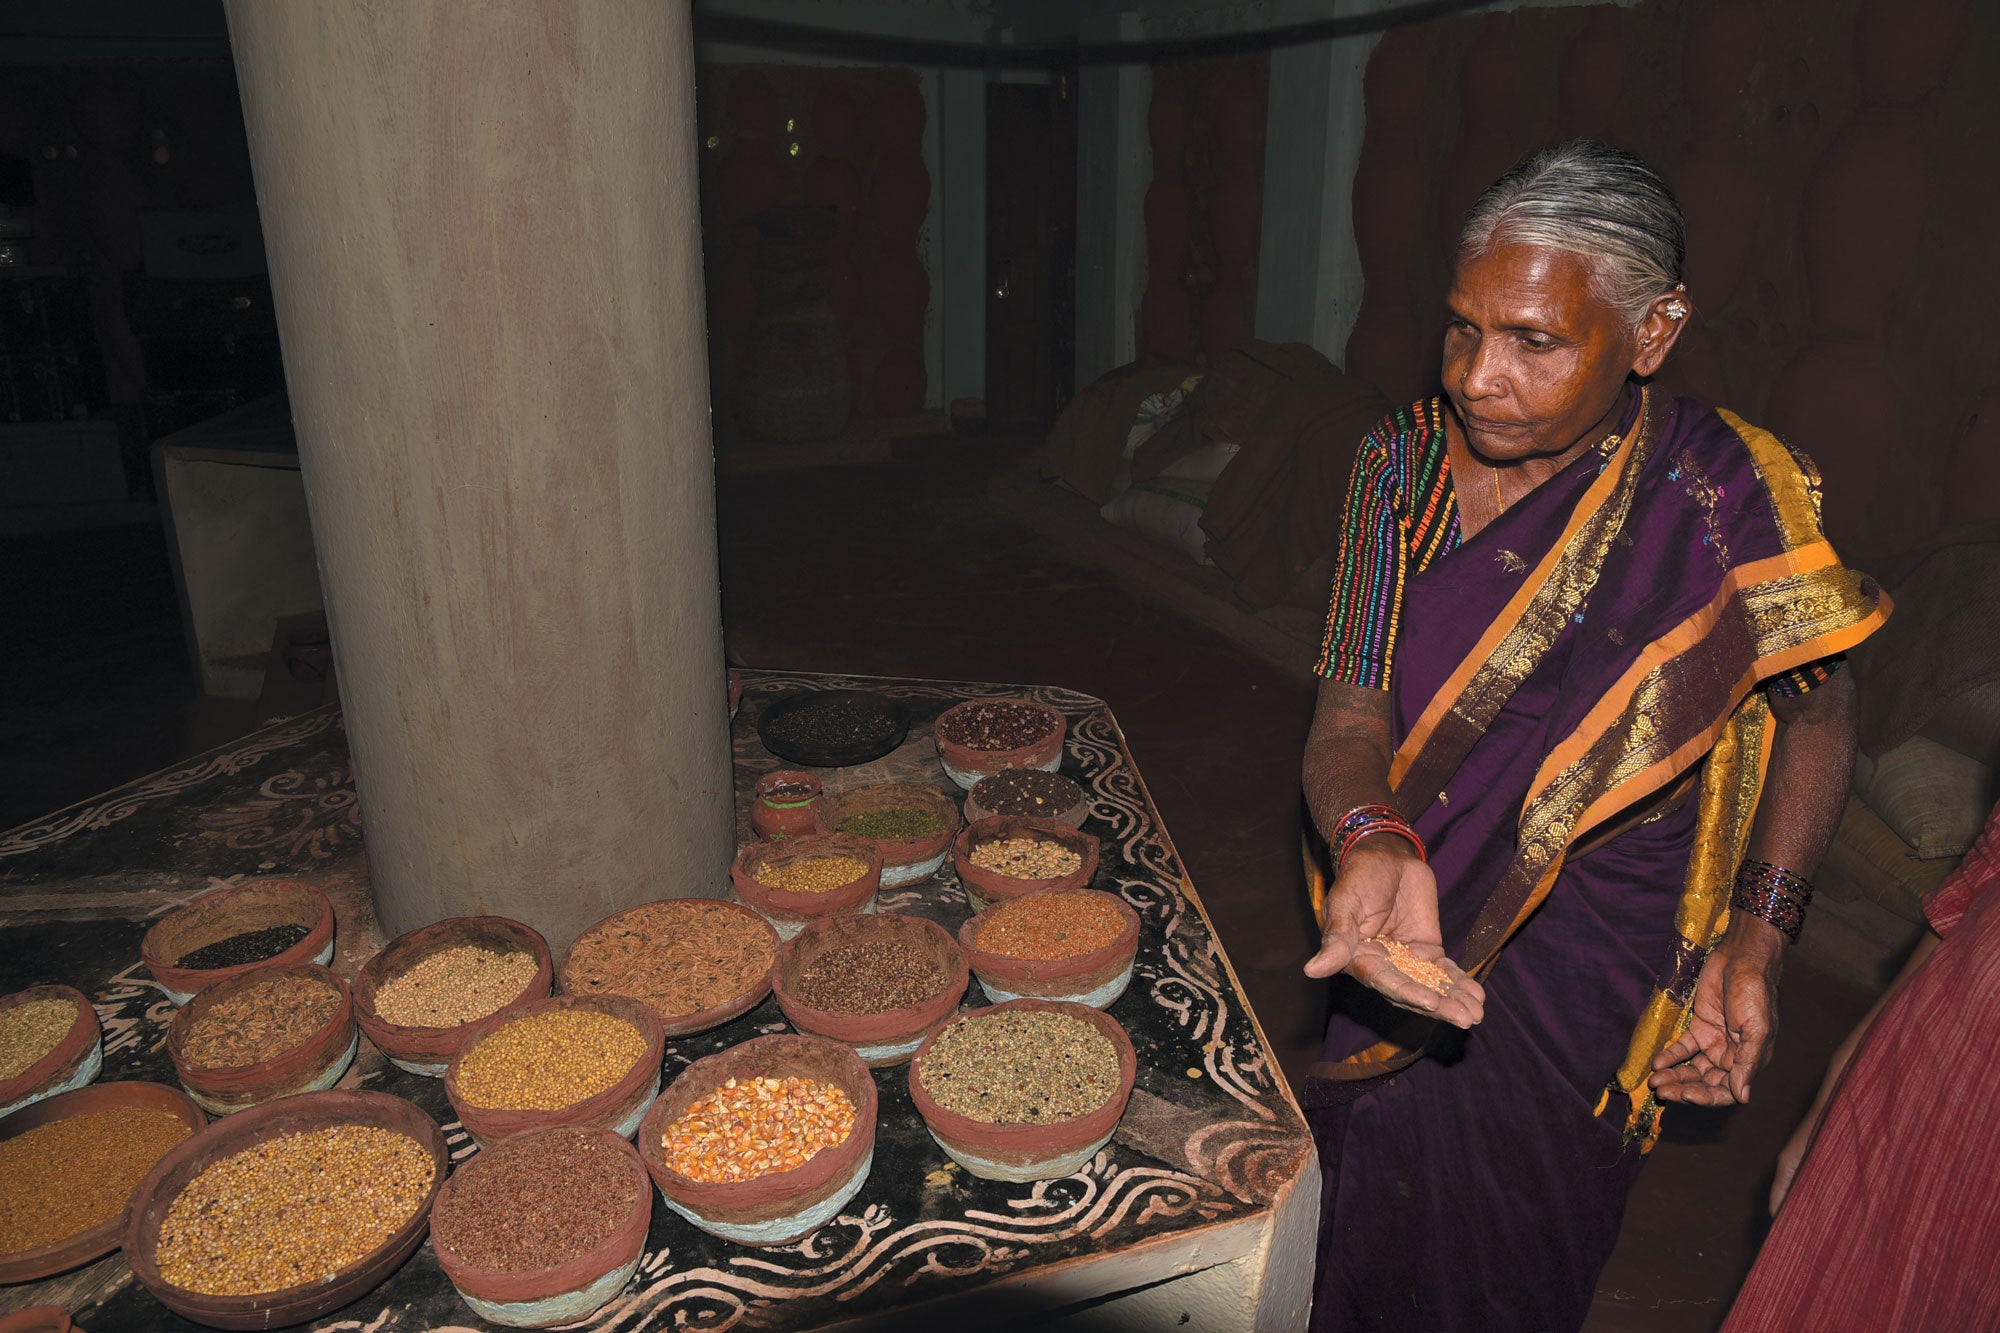 Woman showing handful of seeds selected from one of the containers on the table in front of here.